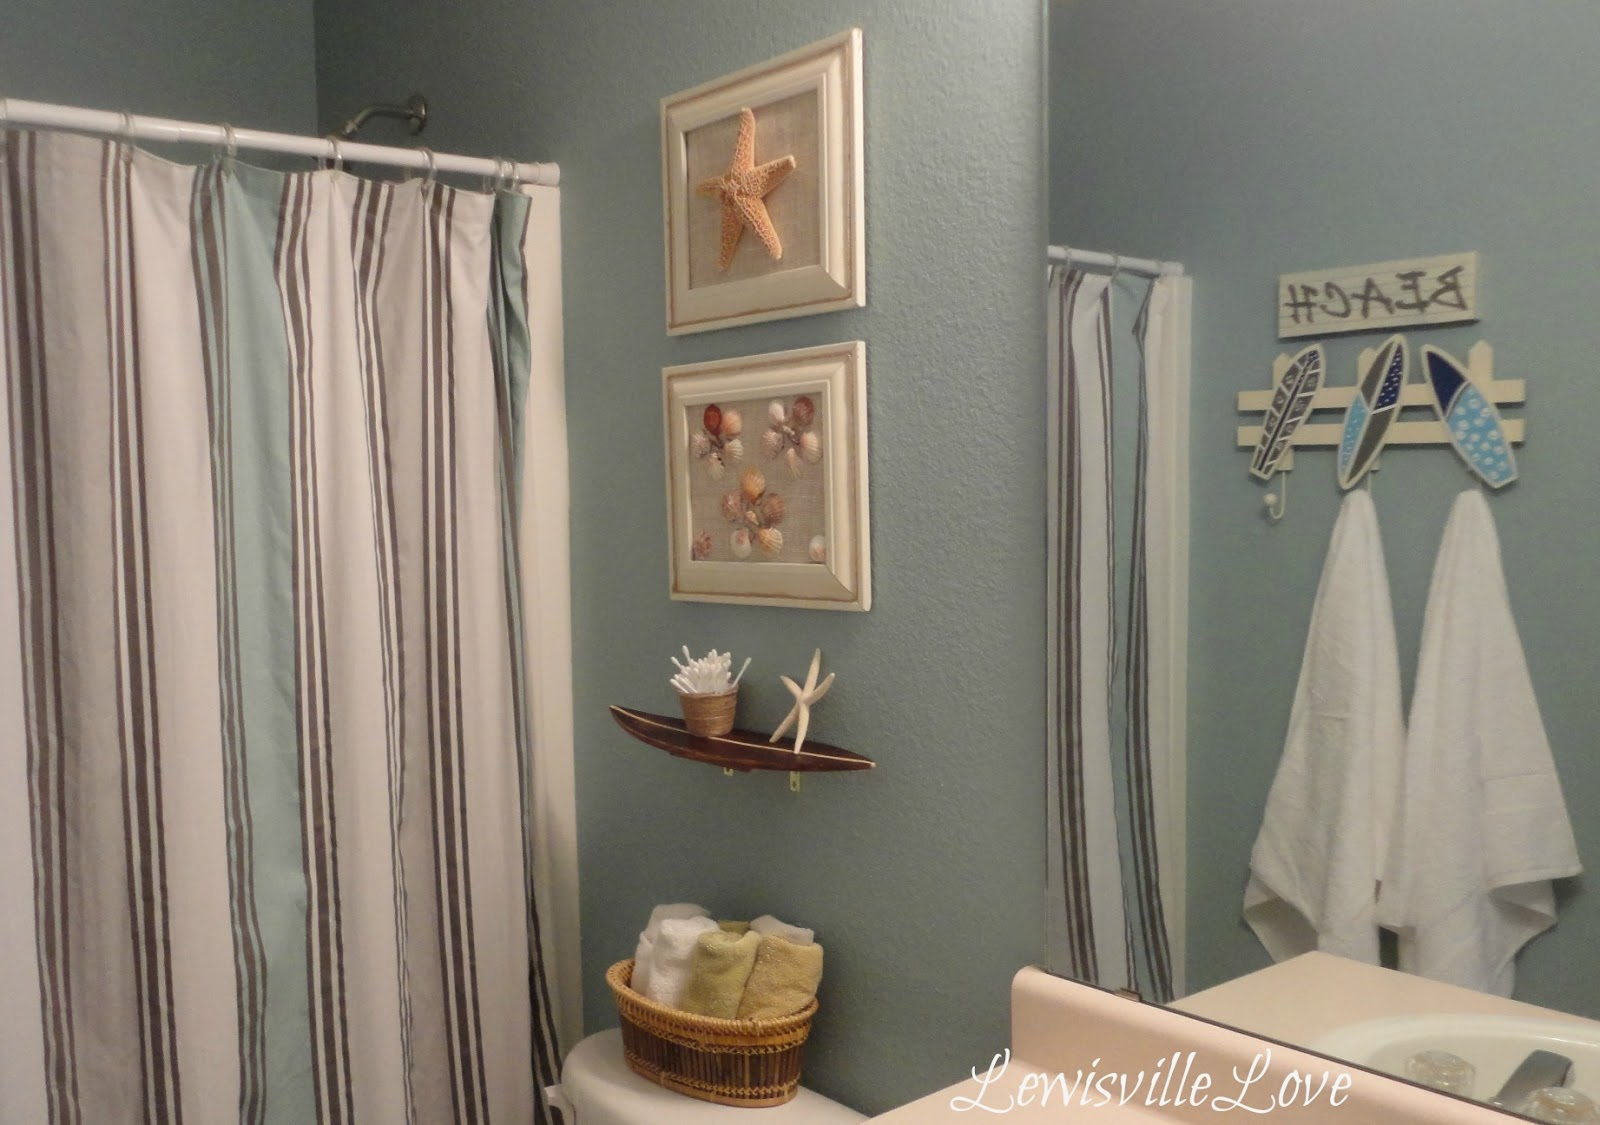 Relaxing Beach Themed Bathroom Lewisville Love Design (Image 7 of 10)